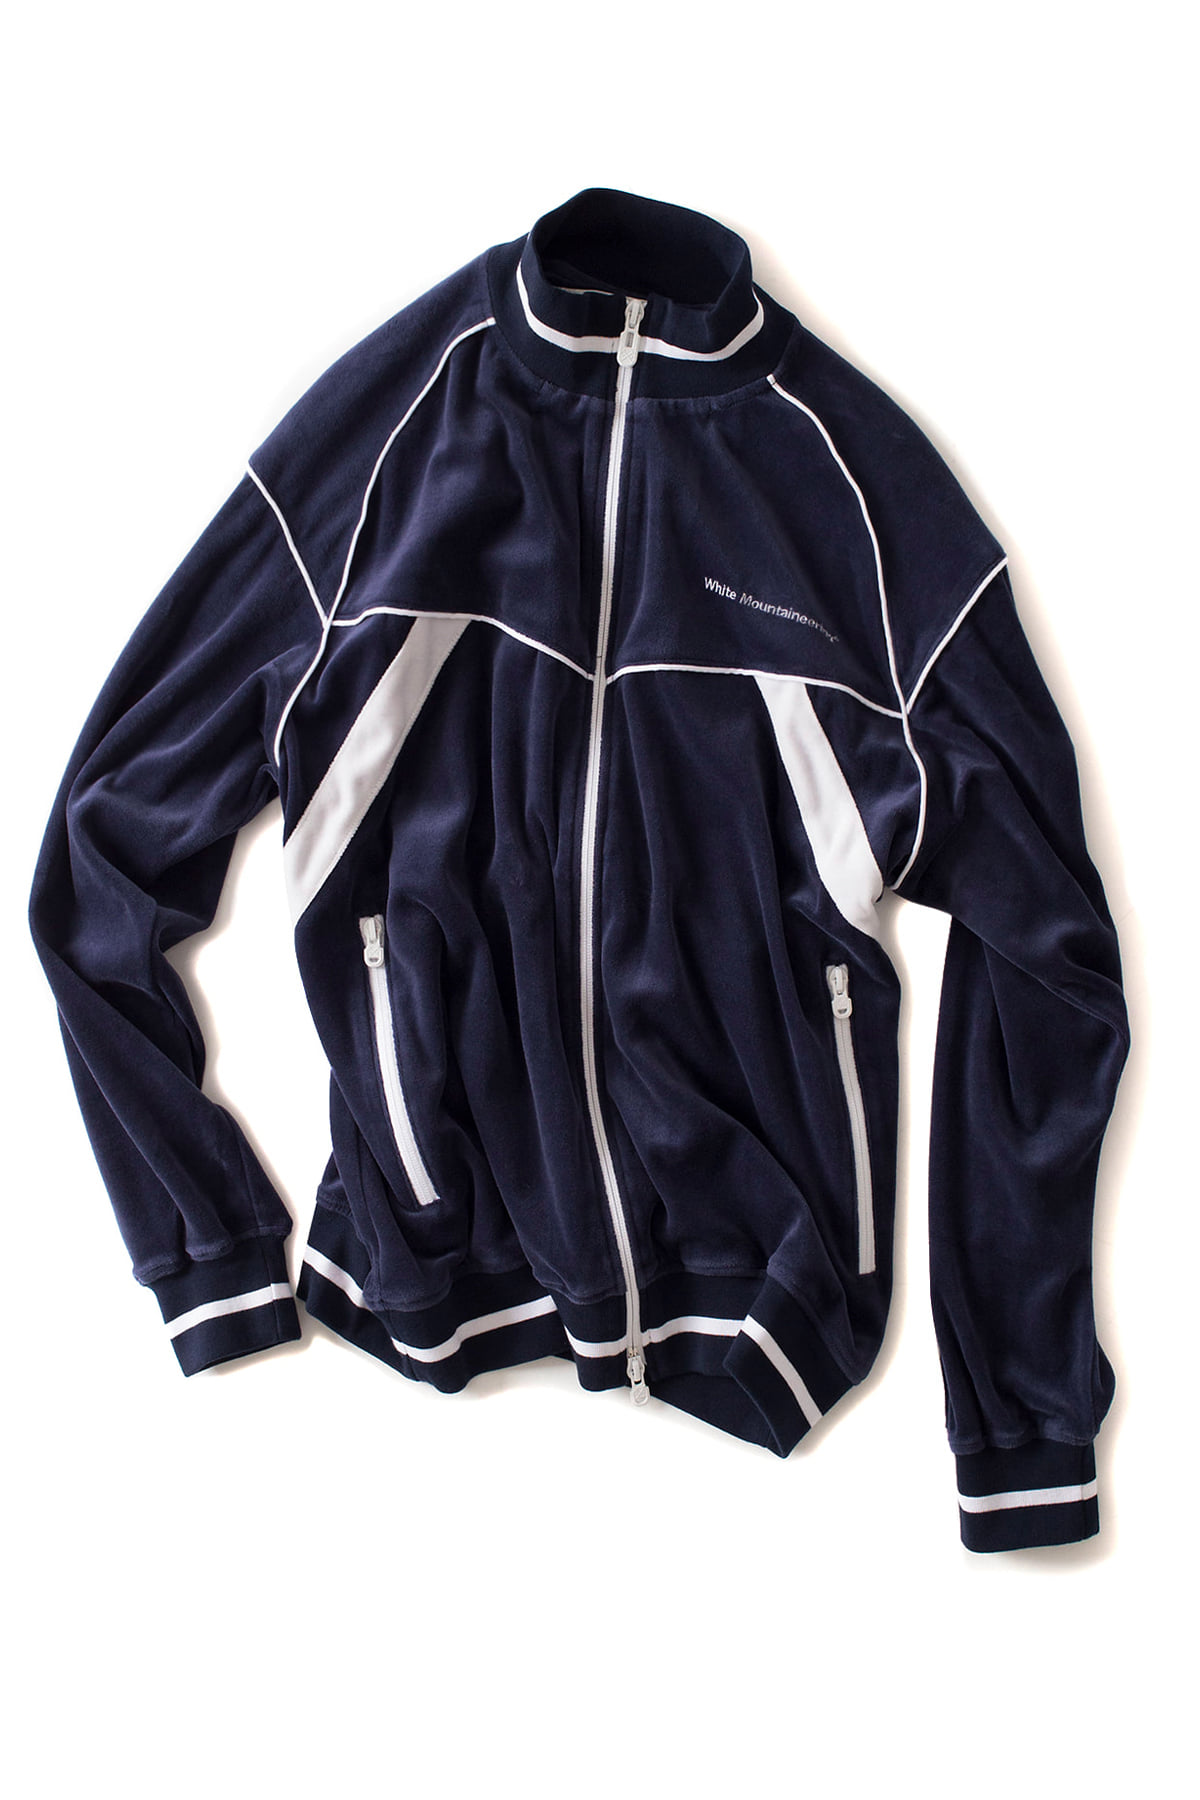 WHITE MOUNTAINEERING : Velour Track Top (Navy)